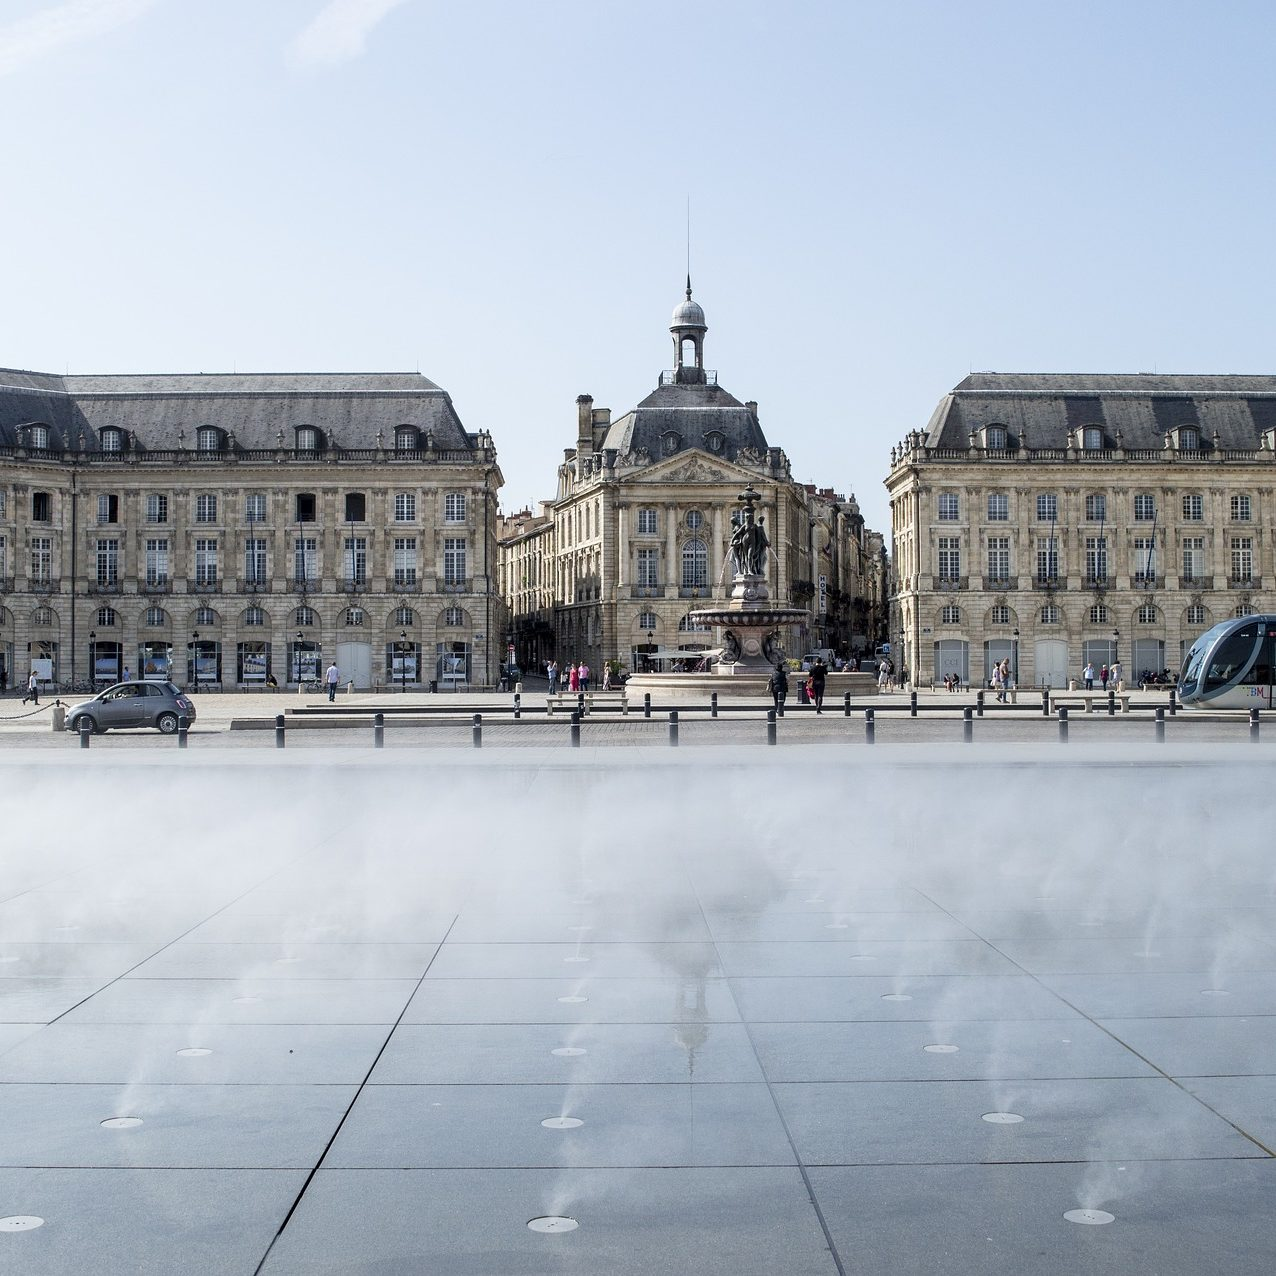 Visit Bordeaux, France. Travel guide Borgeaux. What to do and see in Bordeaux.